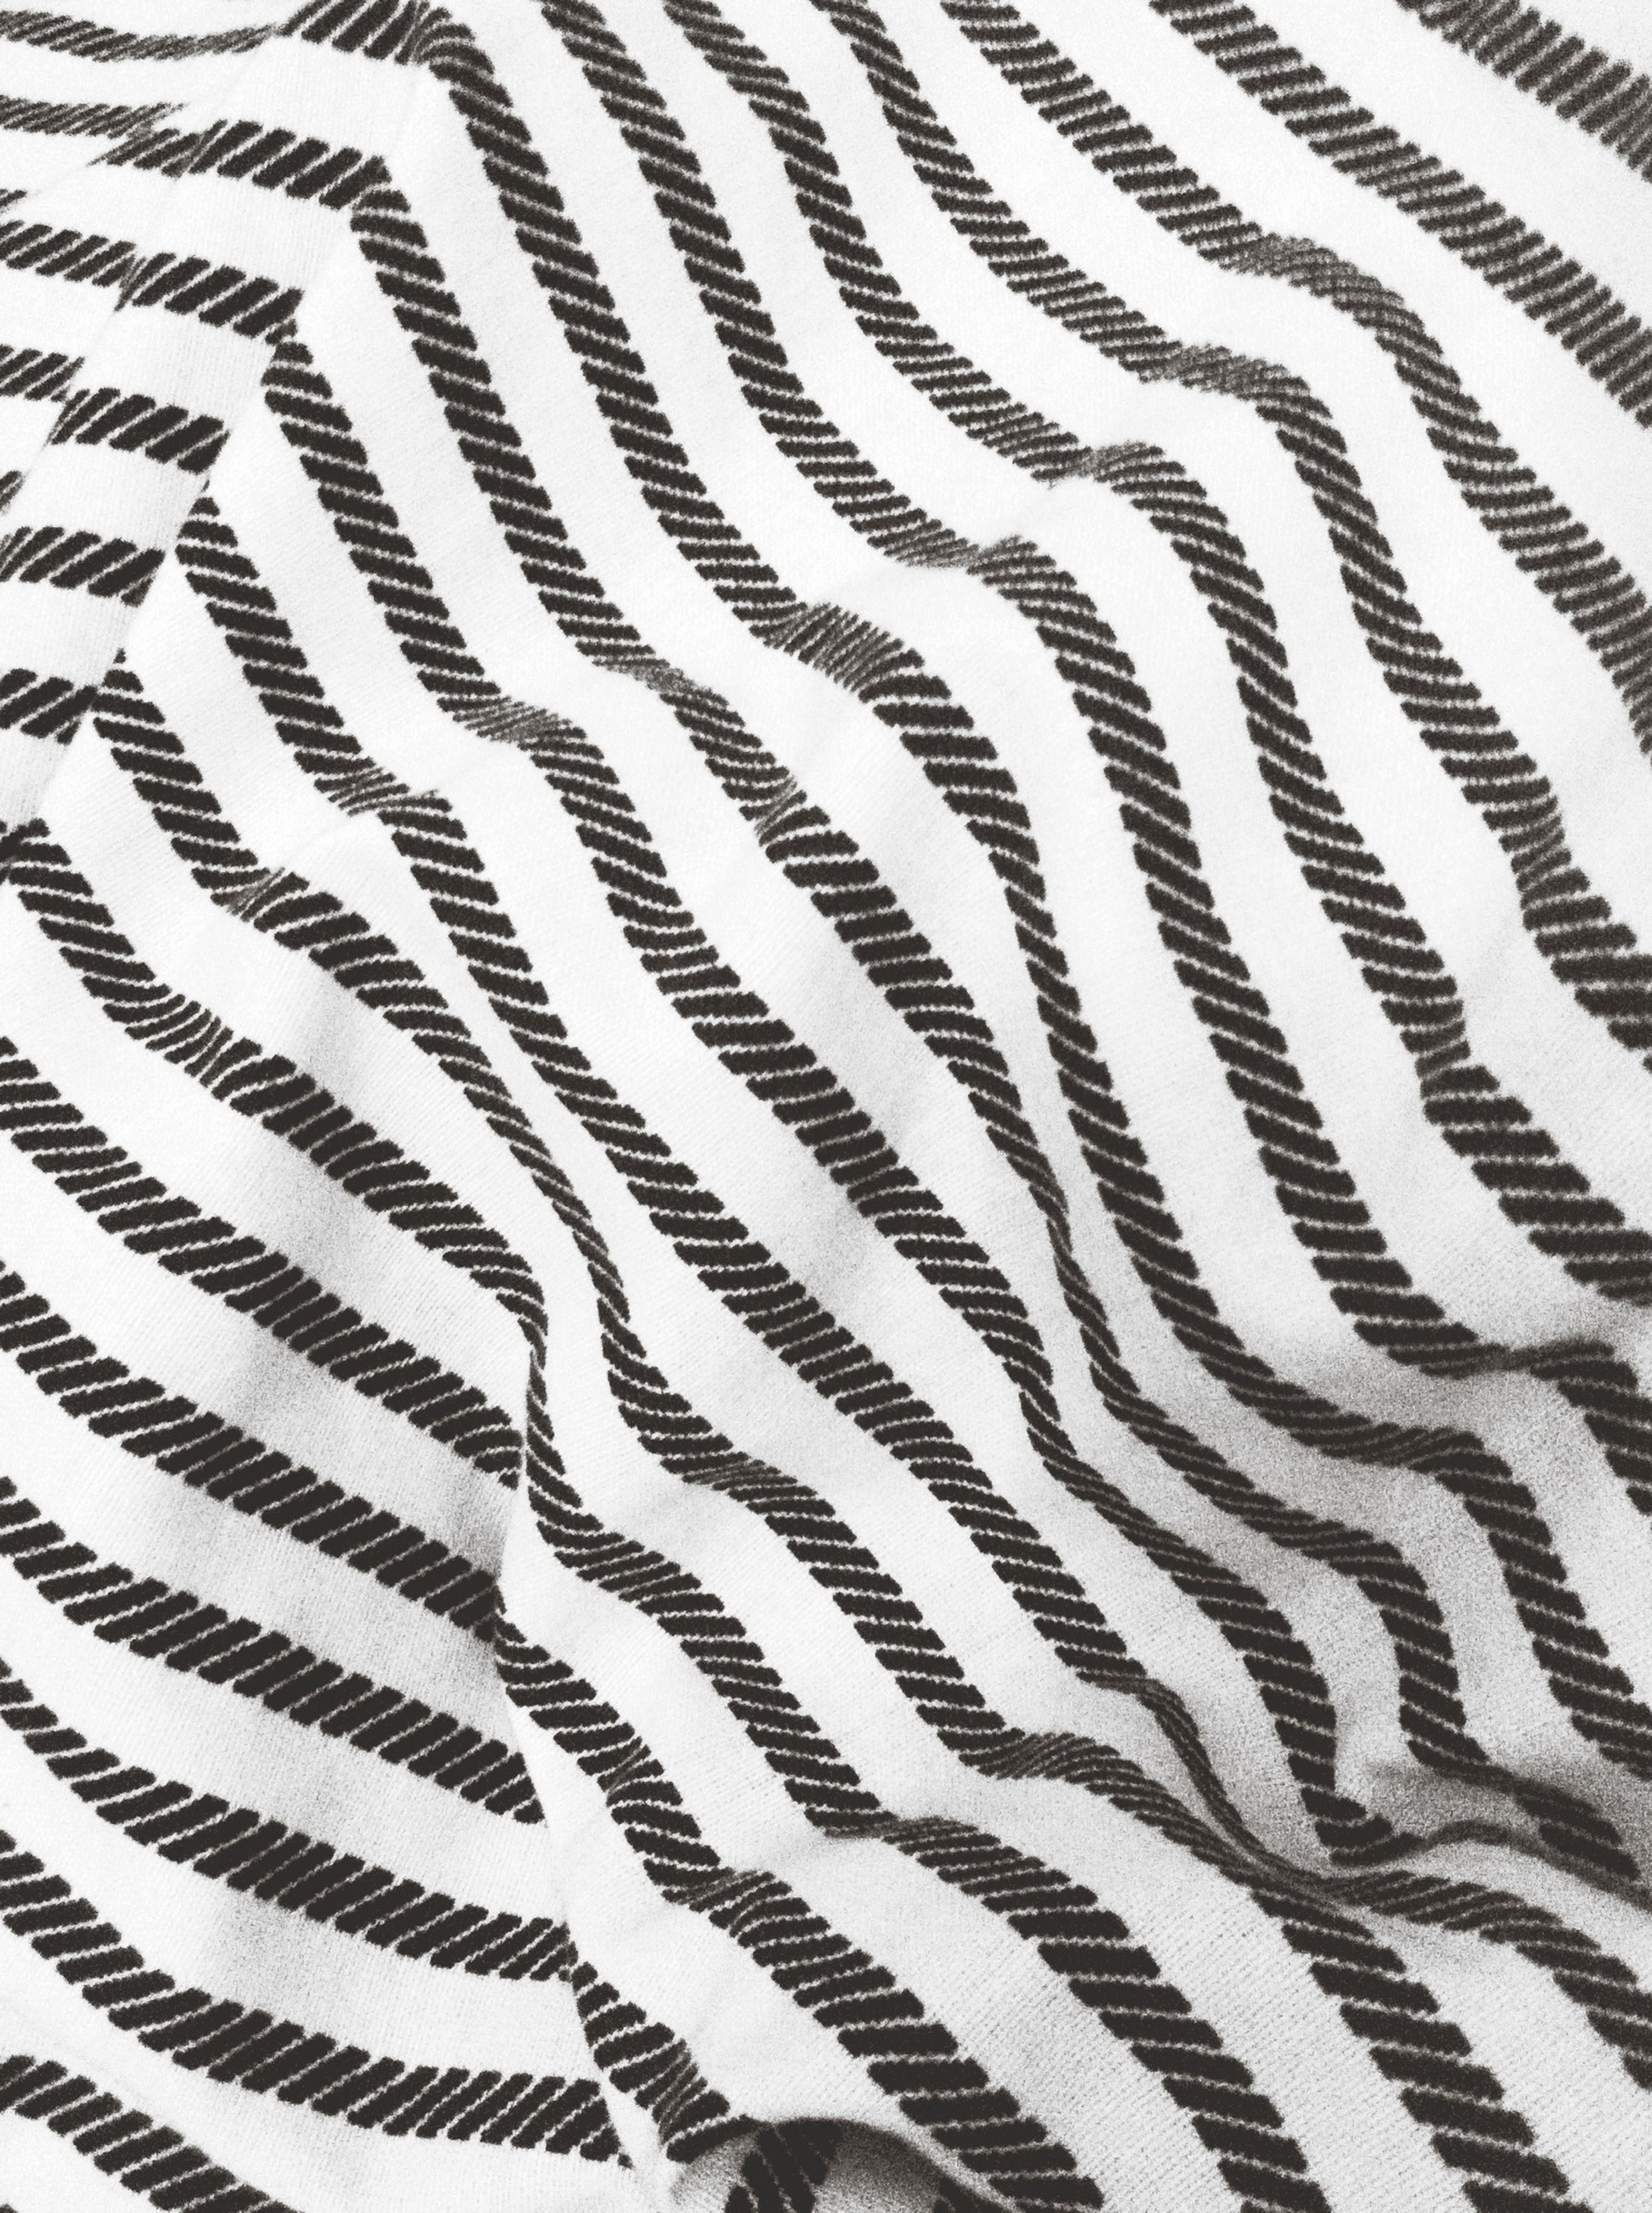 striped, animal themes, pattern, zebra, full frame, one animal, natural pattern, backgrounds, mammal, wildlife, no people, outdoors, close-up, day, high angle view, safari animals, design, part of, white color, nature